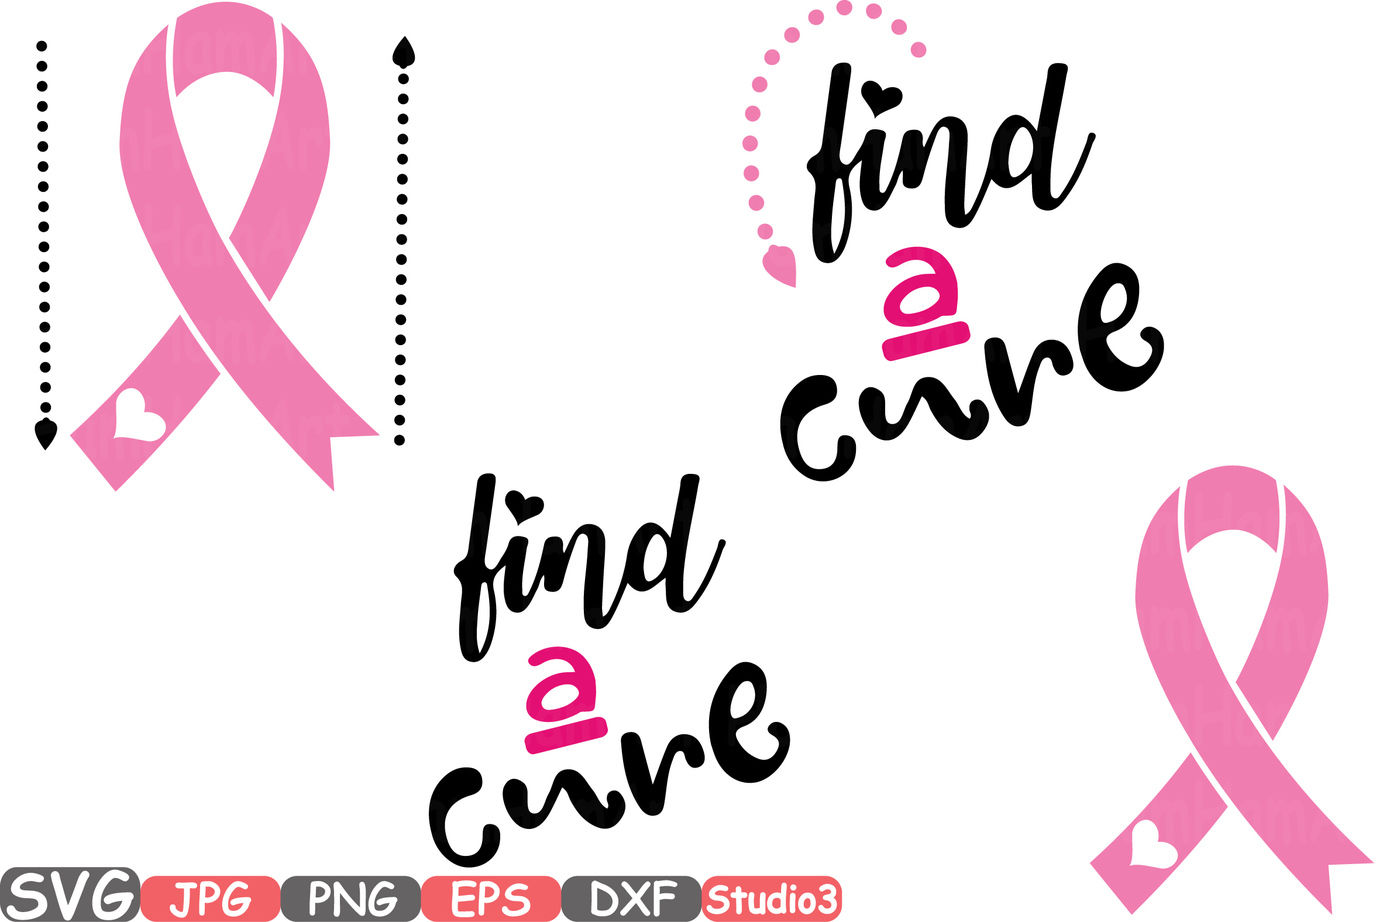 Find A Cure Breast Cancer Ribbon Monogram Silhouette Svg Cutting Files Digital Clip Art Graphic Studio3 Cricut Cuttable Die Cut Machines Cure 57sv By Hamhamart Thehungryjpeg Com